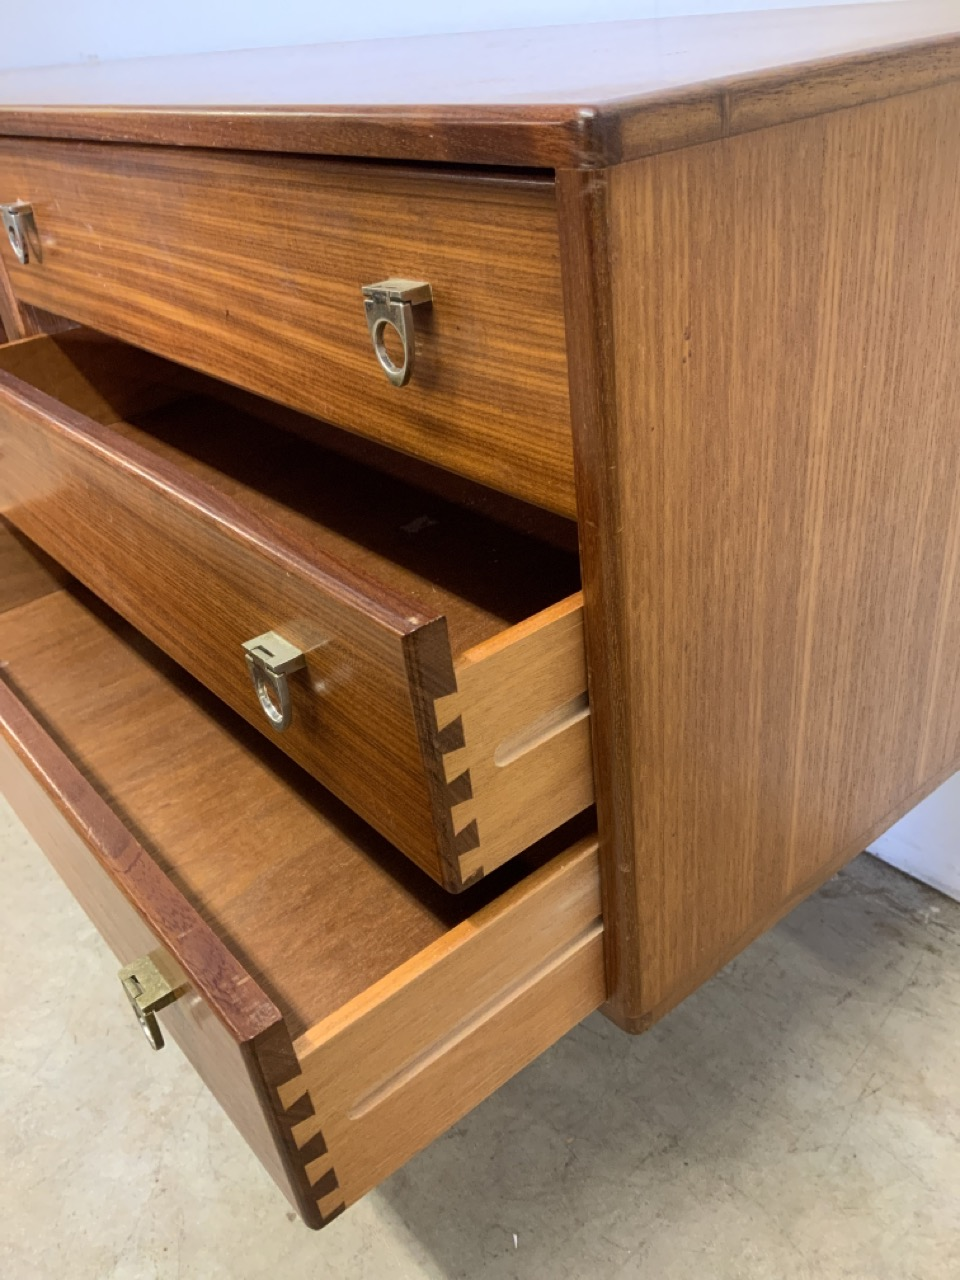 A mid century C.1960s teak sideboard by John Herbert for A Younger. Double cupboard doors to - Image 2 of 10